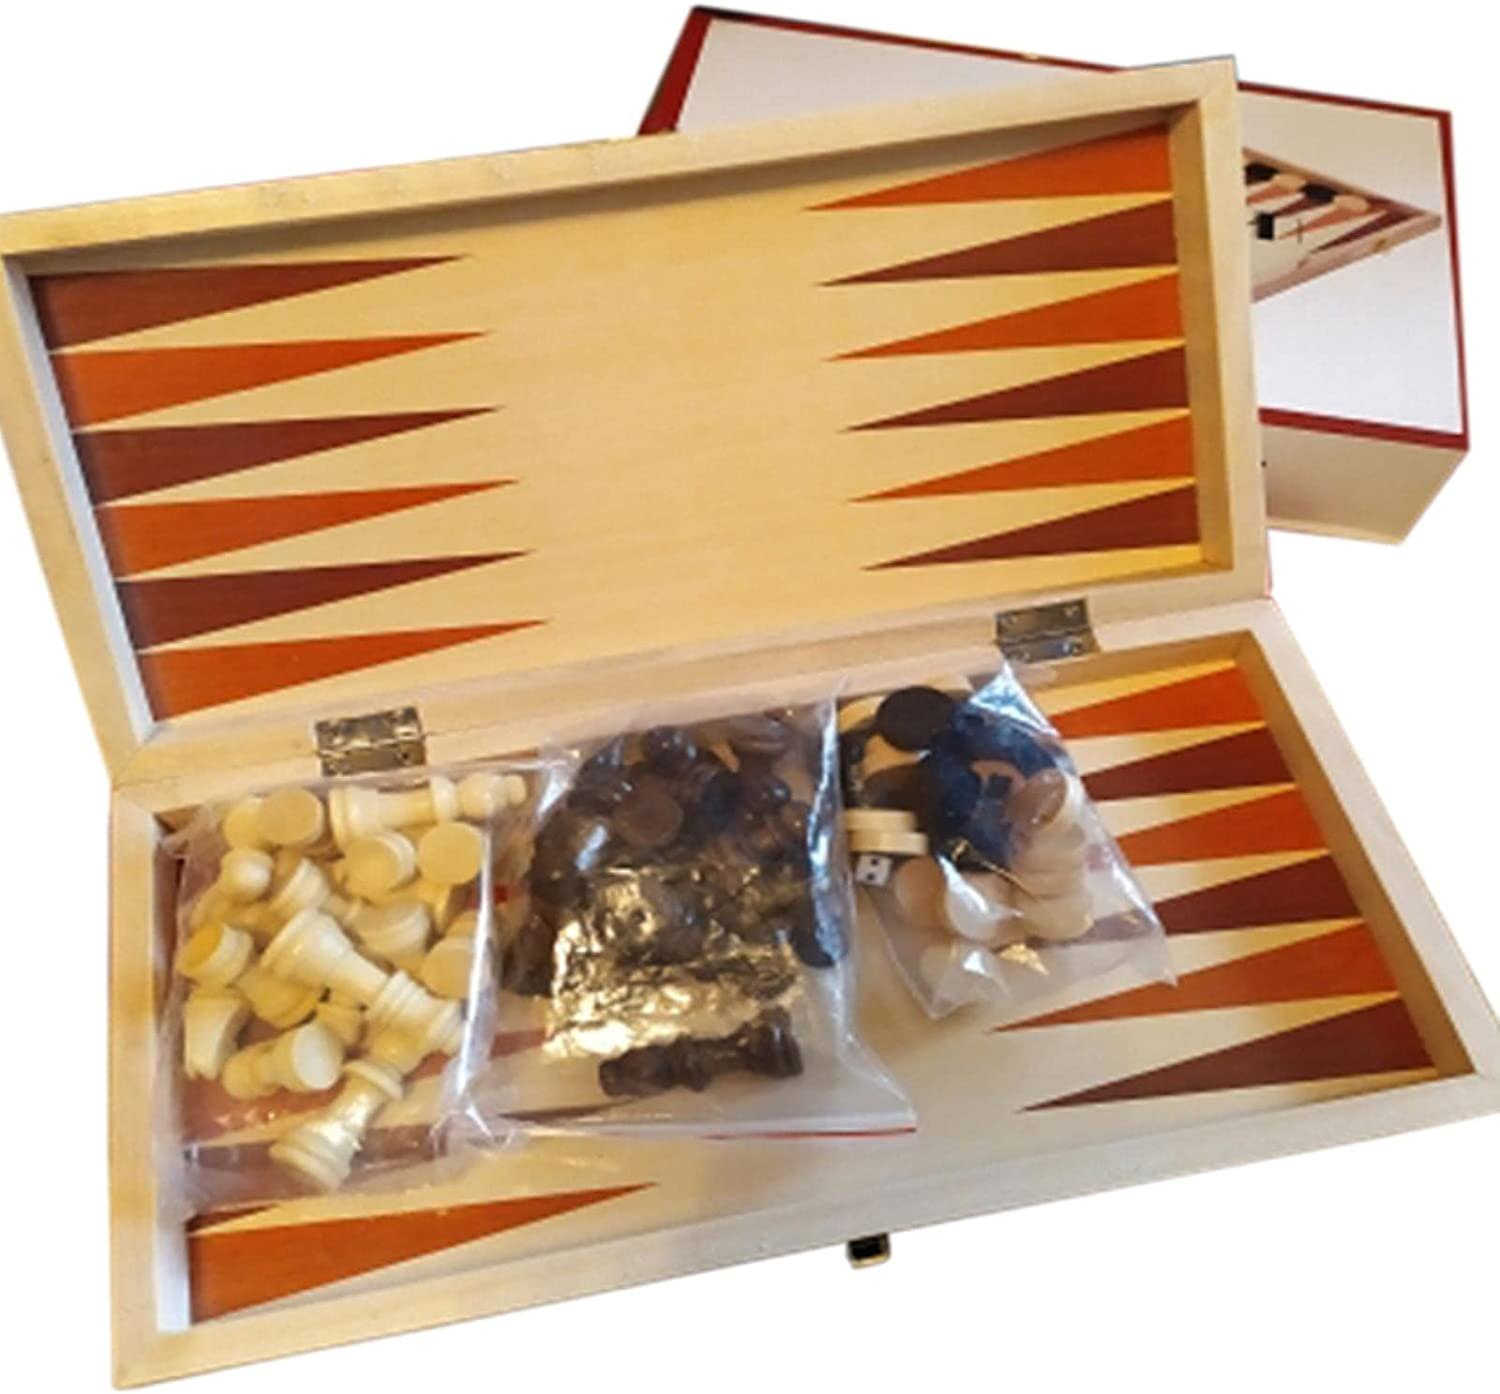 Wooden Chess Excellence Set 3 in 1 Portable Check Travel Folding Ranking TOP19 Backgammon